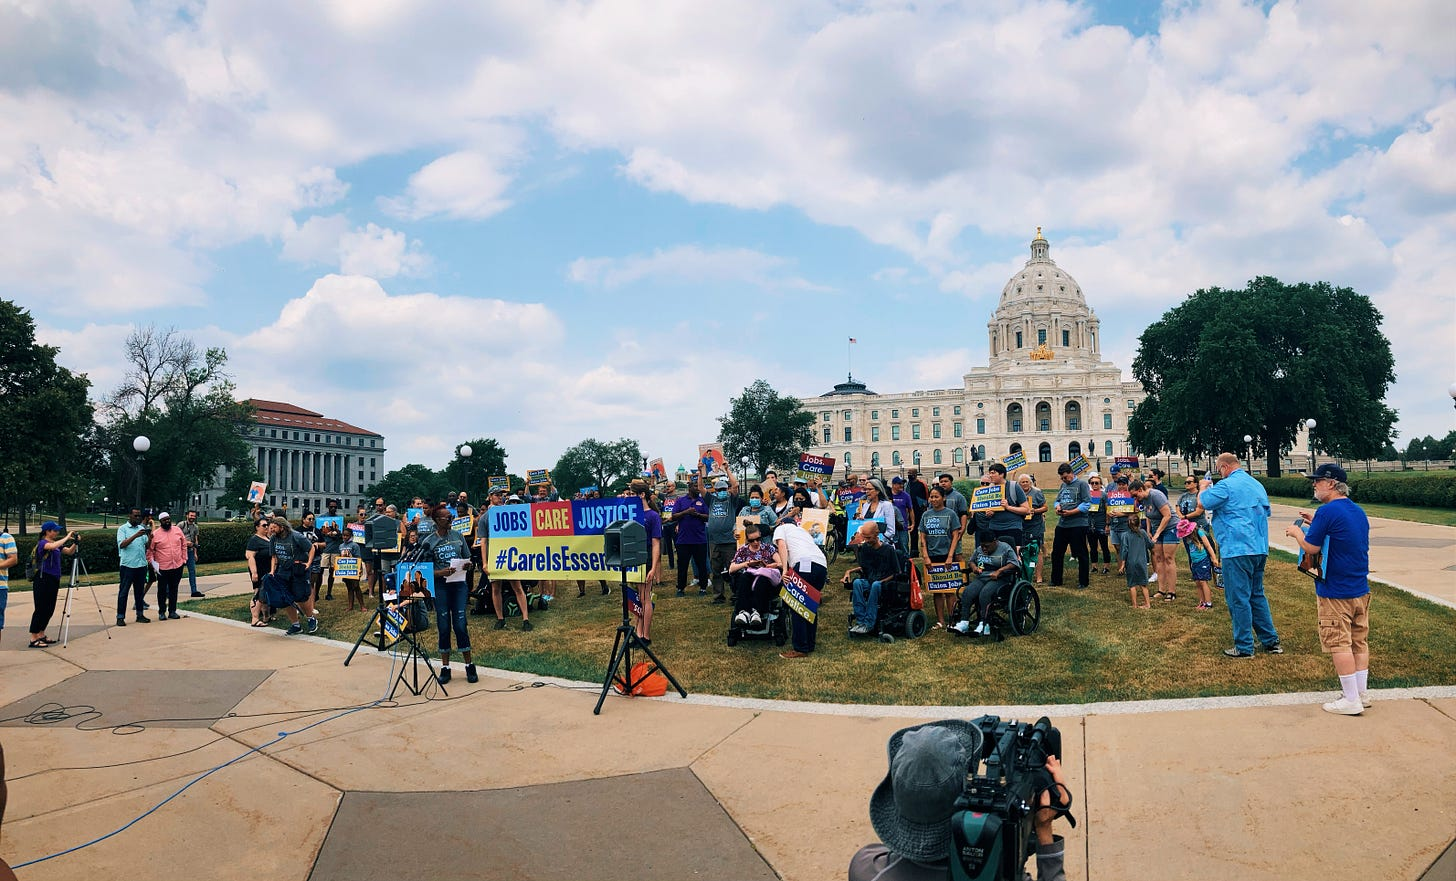 """a crowd gathers on the front lawn of the state capitol building with signs saying """"jobs care justice"""" as a newsperson points their camera at them"""